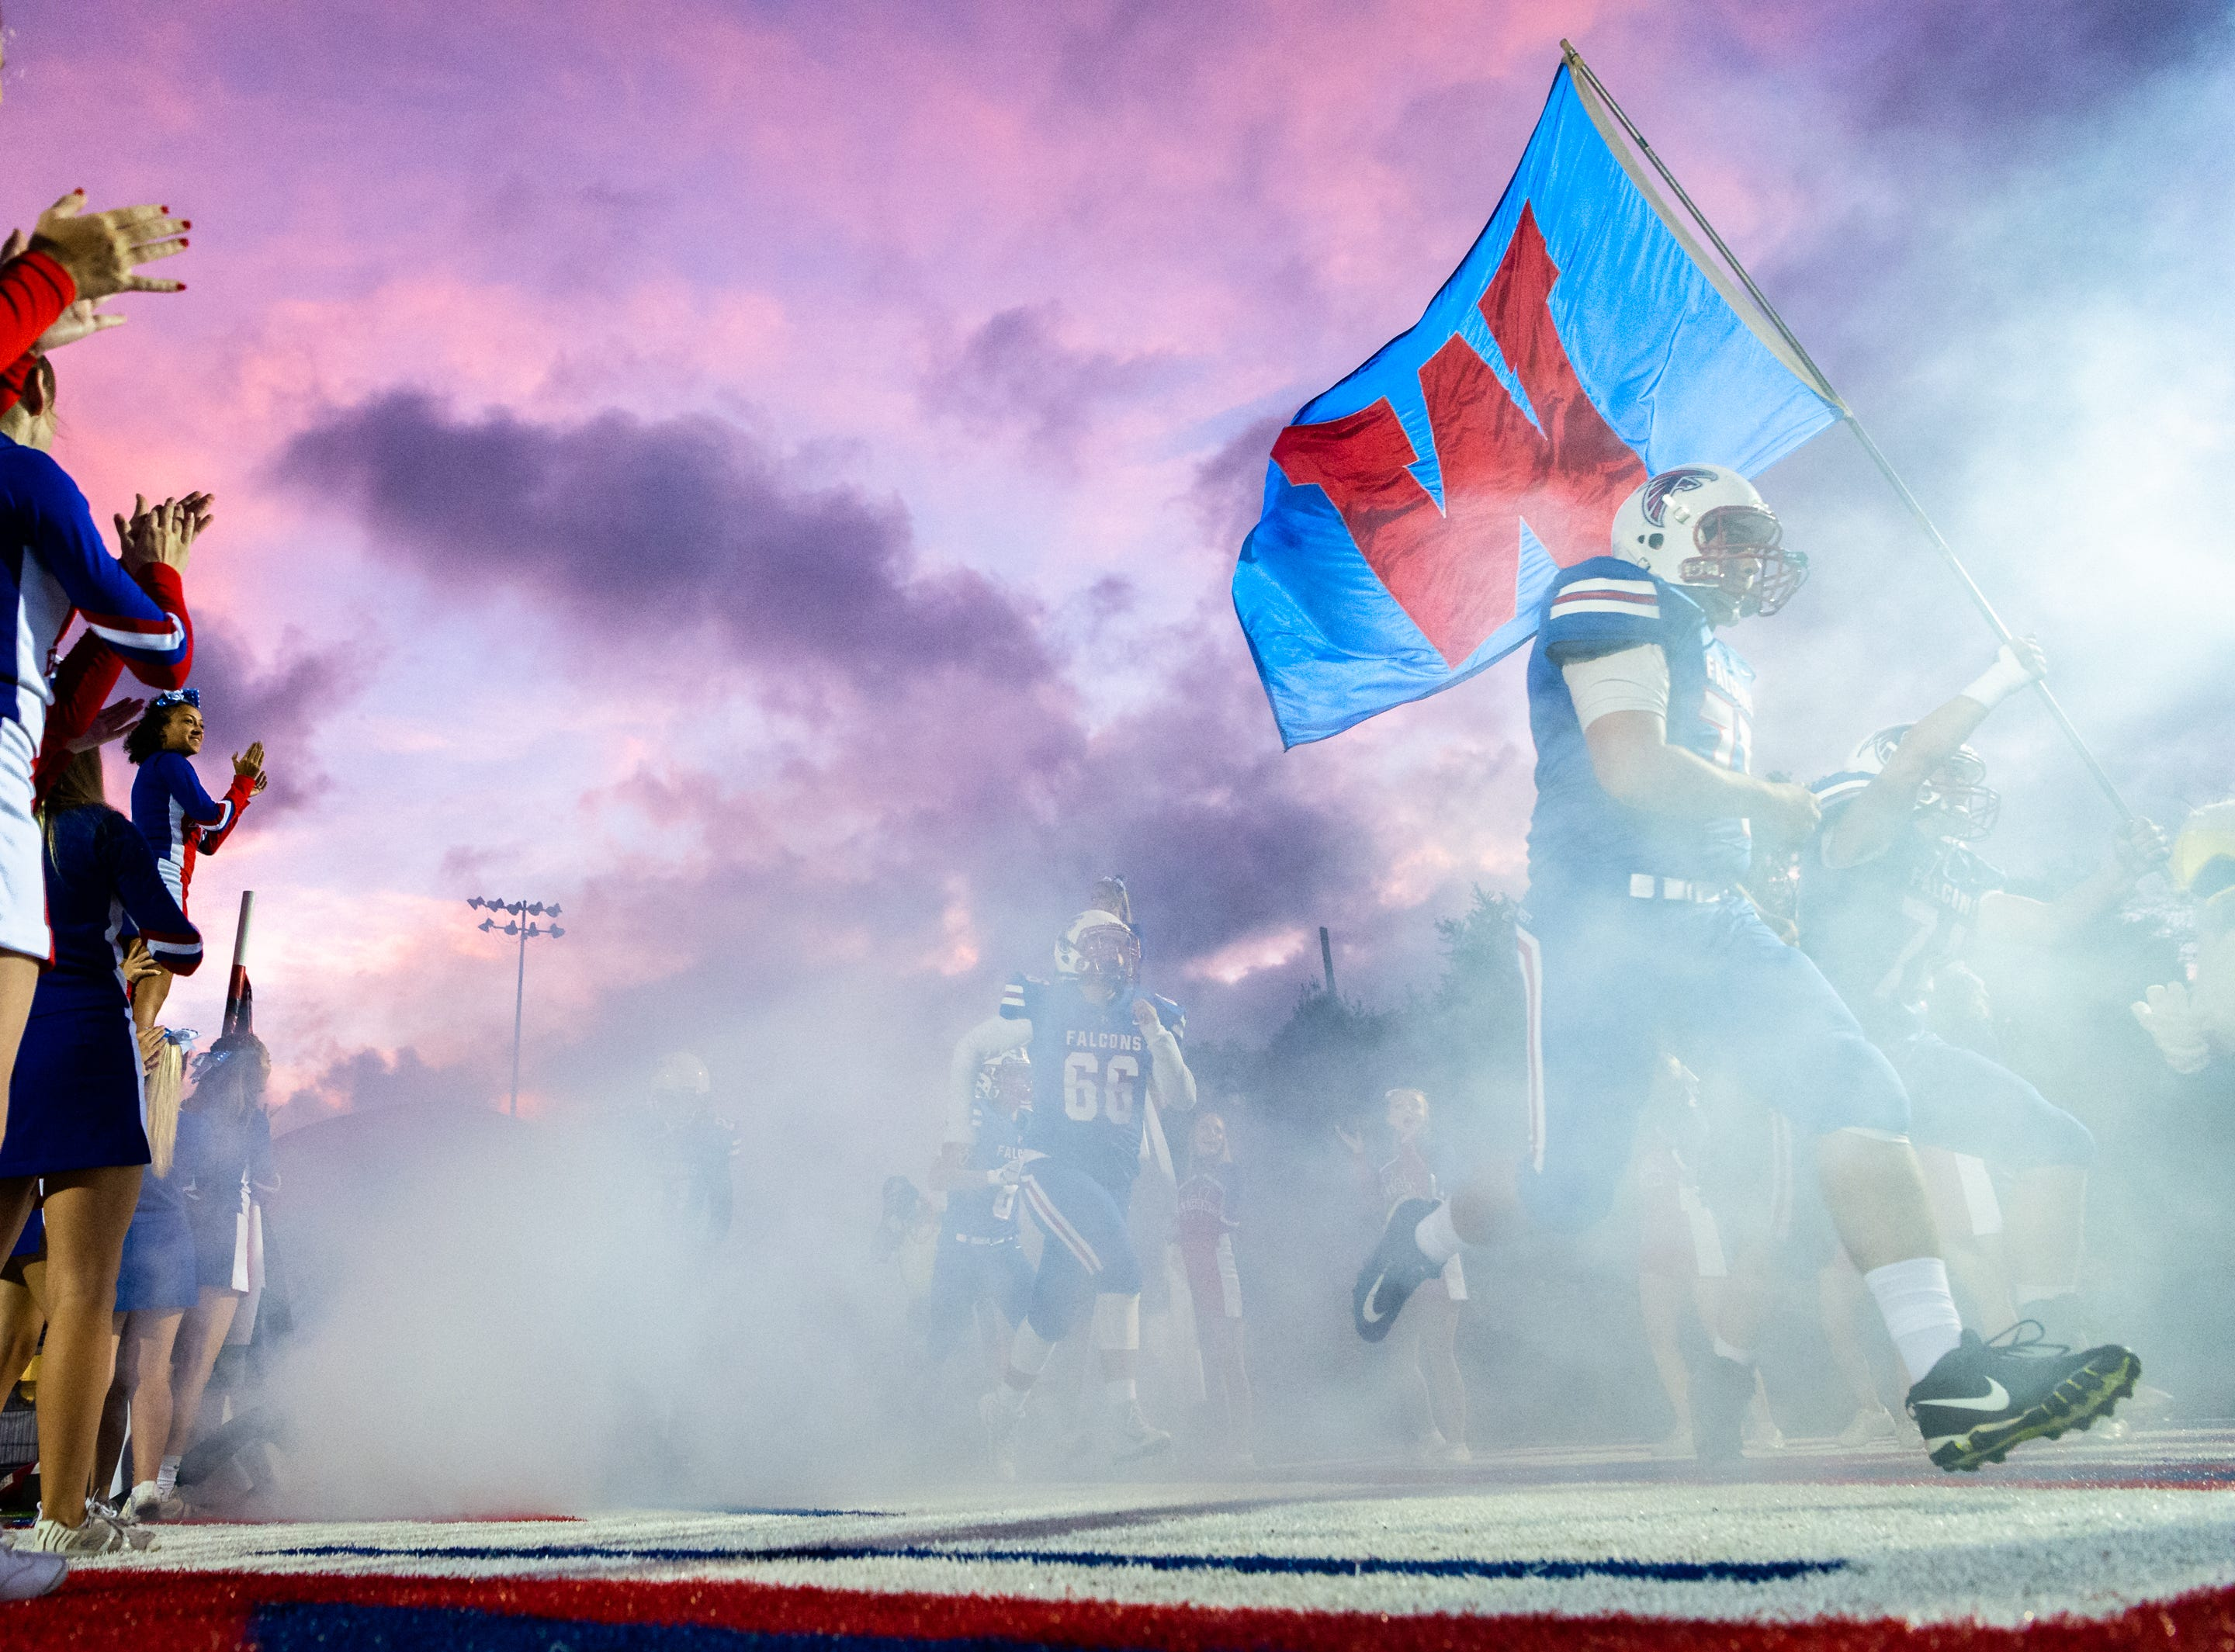 The West Henderson football team runs onto the field before their Friday night game against Erwin Sept. 28, 2018. Erwin won 55-33.